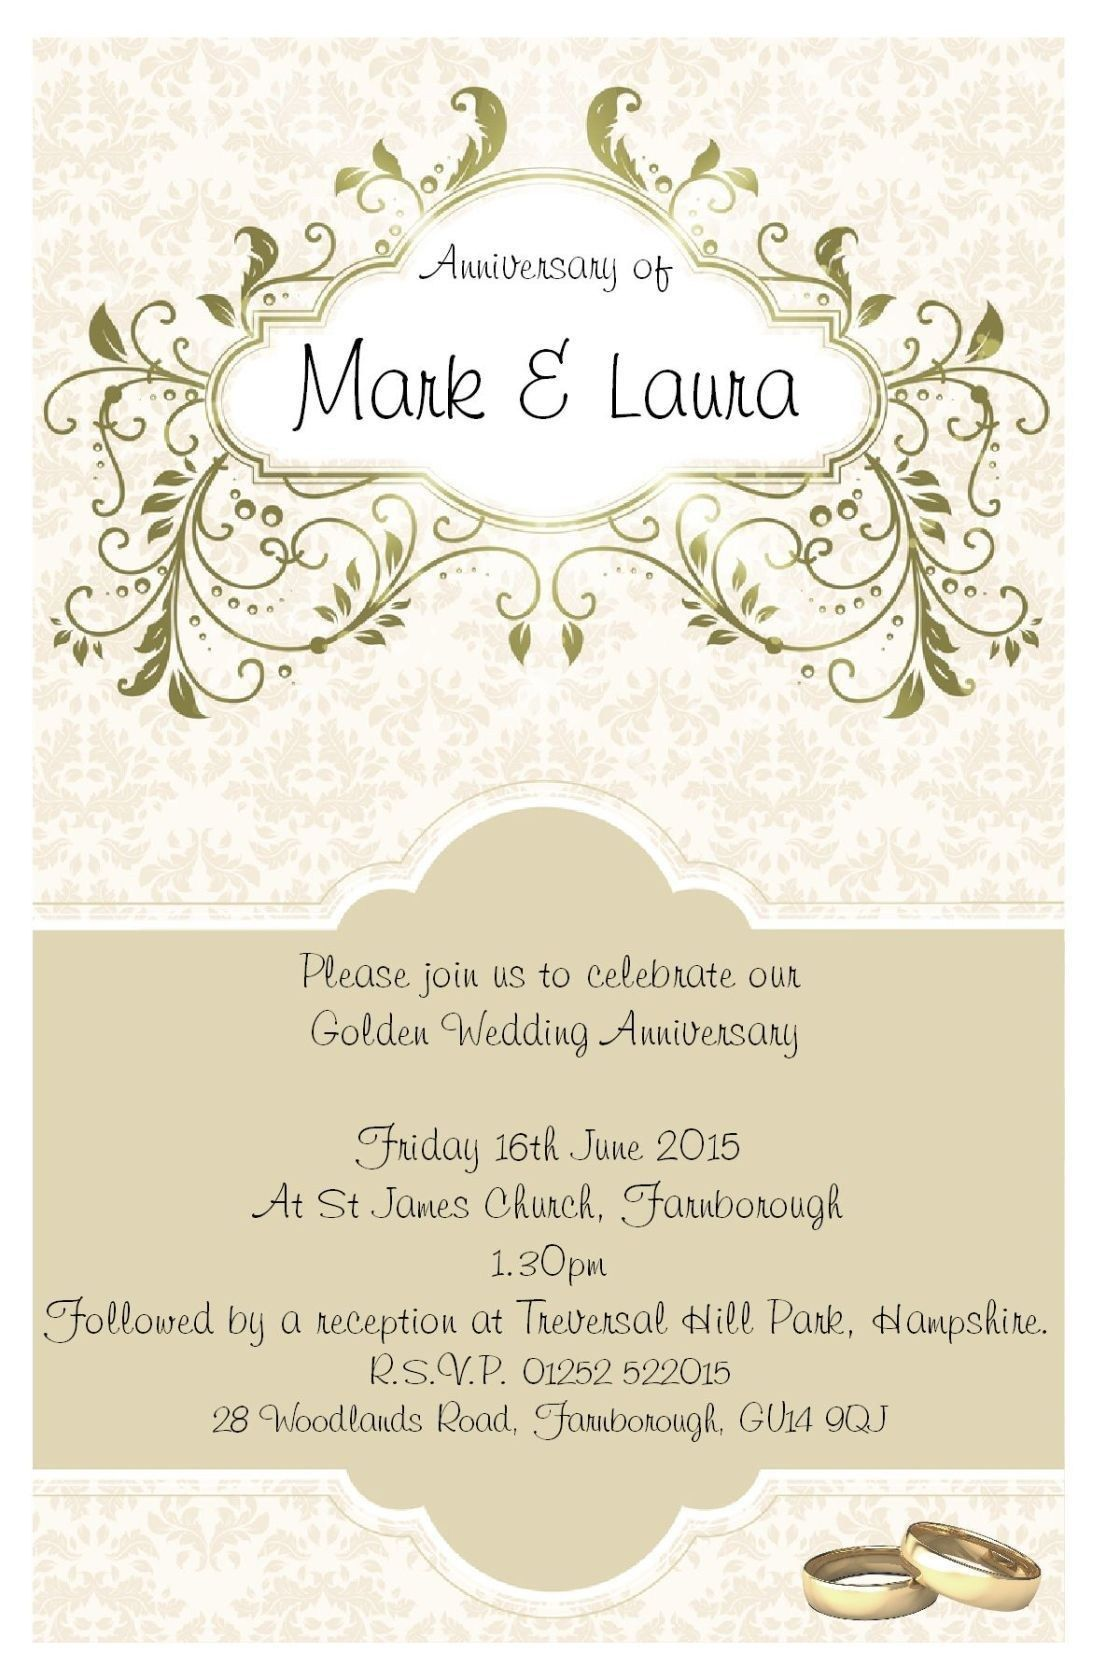 27 Awesome Photo Of 50th Wedding Invitations Golden Wedding